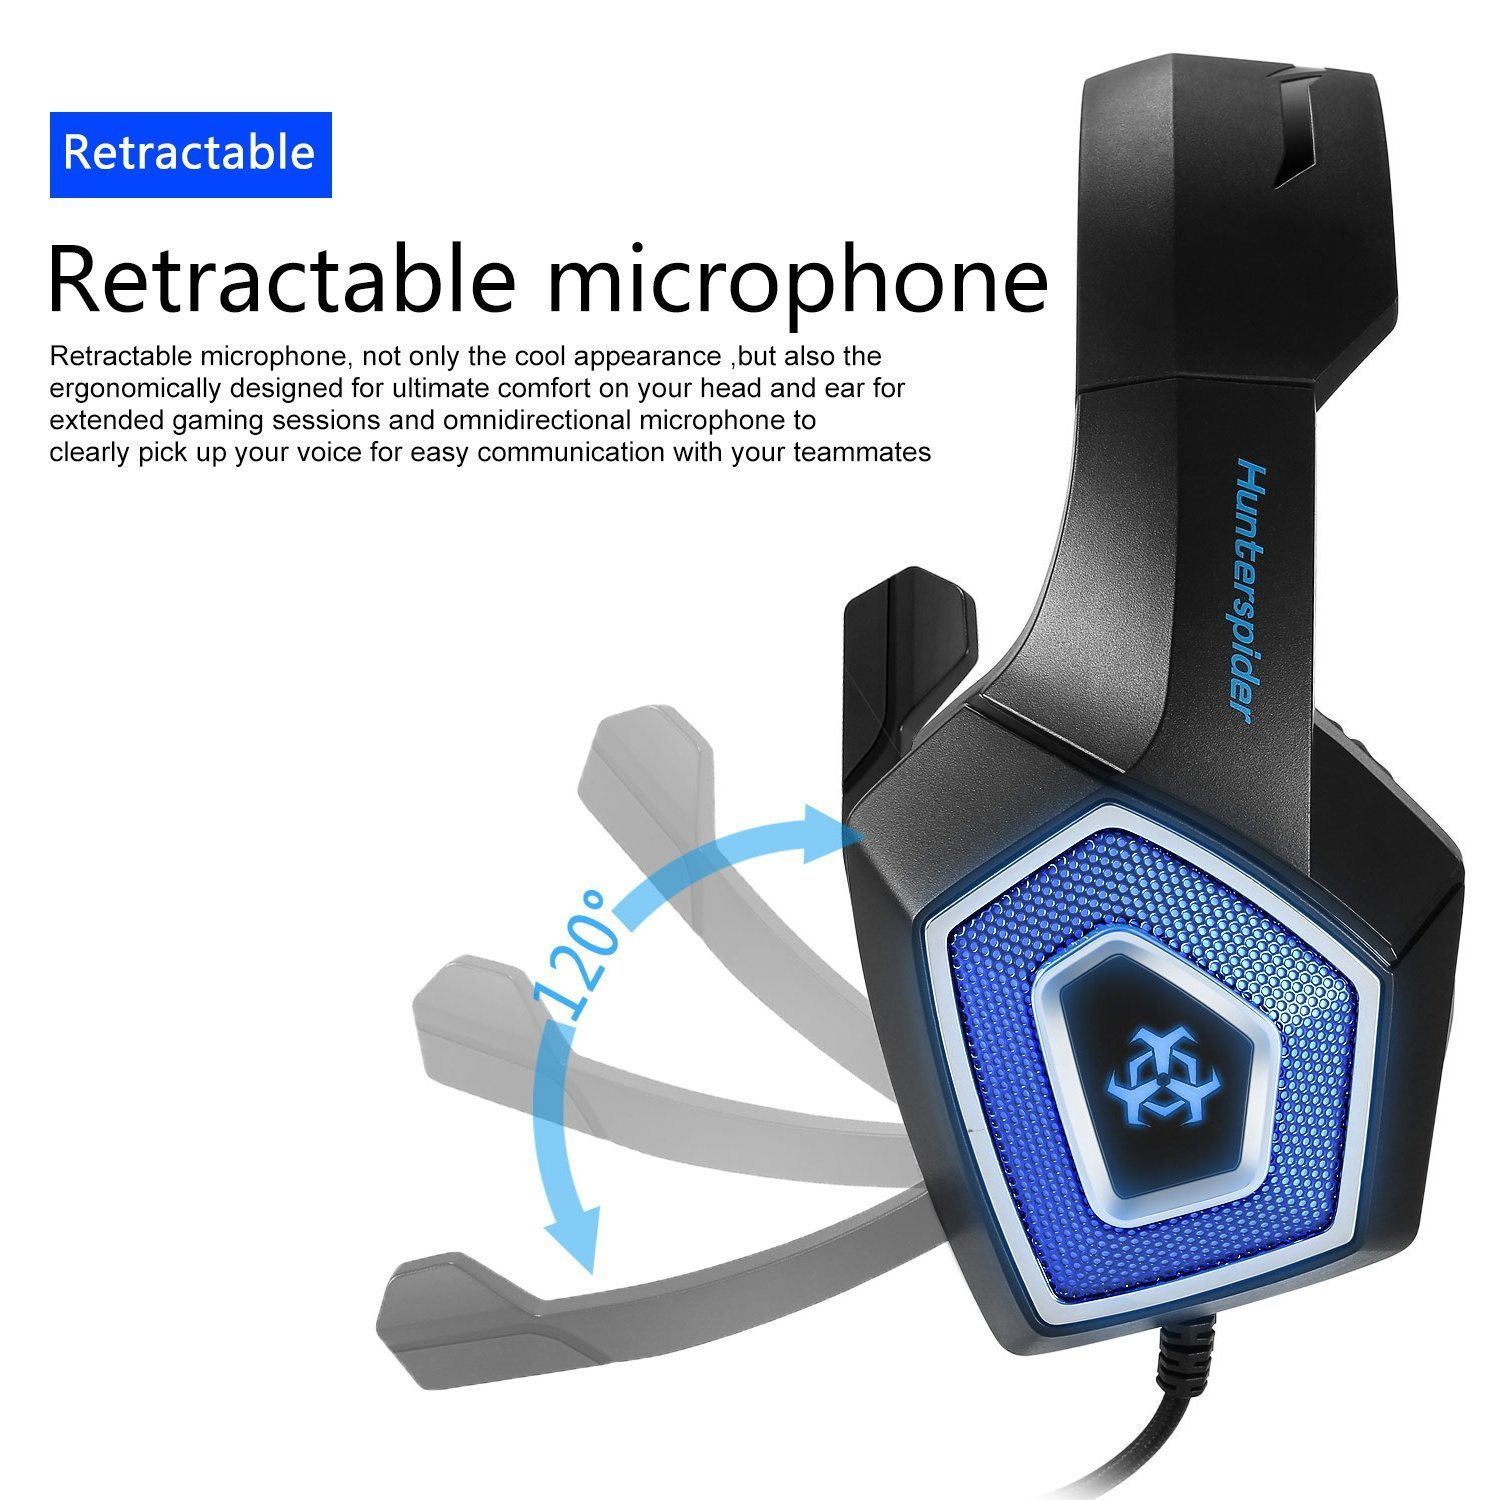 Fuleadture Gaming Headset for PS4 Xbox One, PC Gaming Headset with Mic, Noise Cancelling Over Ear Headphones with LED Light, Bass Surround, Soft Memory Earmuffs for Laptop Mac Nintendo Switch Games by Fuleadture (Image #4)